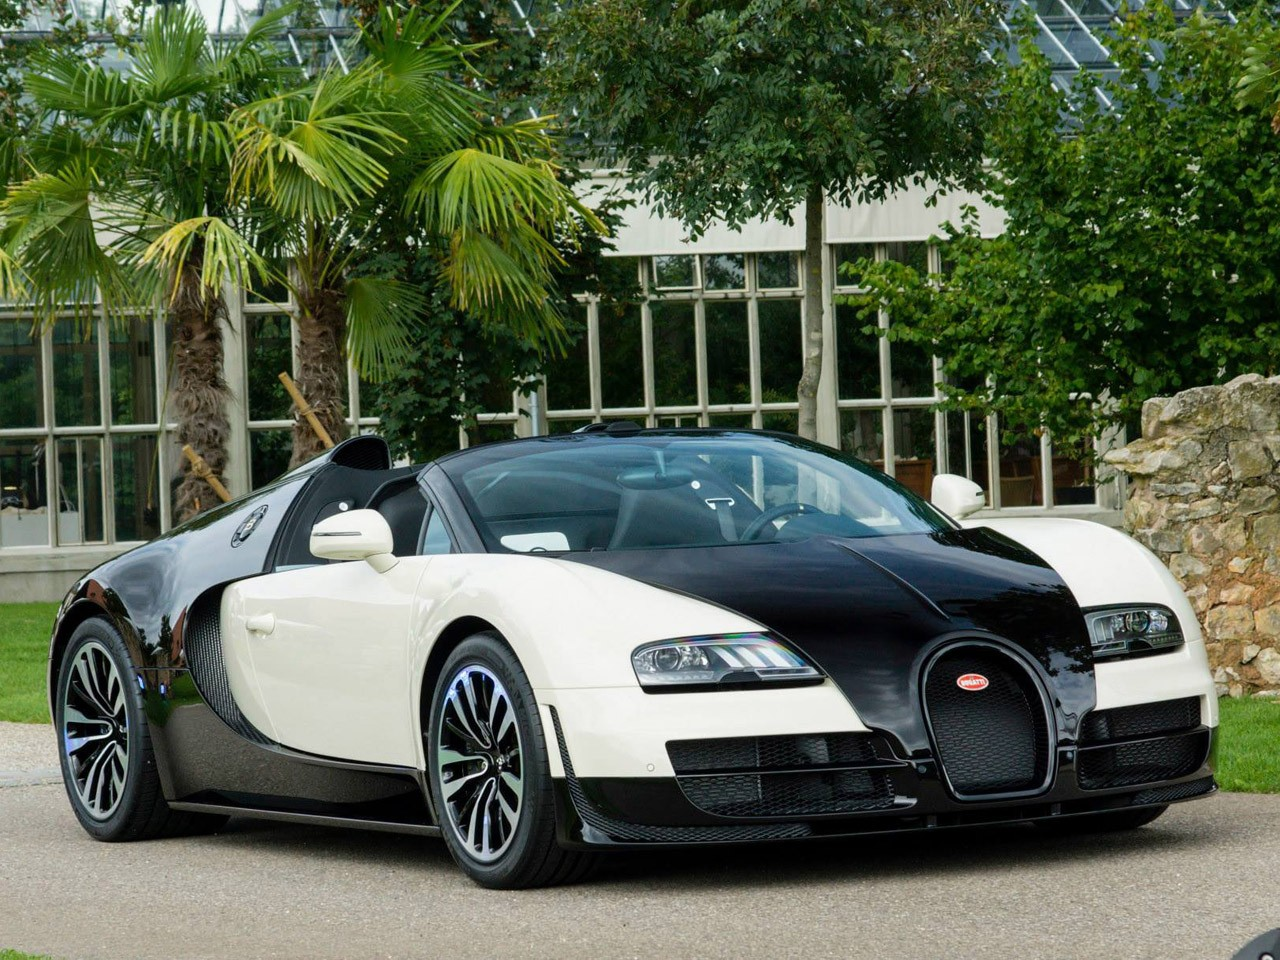 Bugatti Veyron Grand Sport Vitesse - Lang Special Edition (2013)